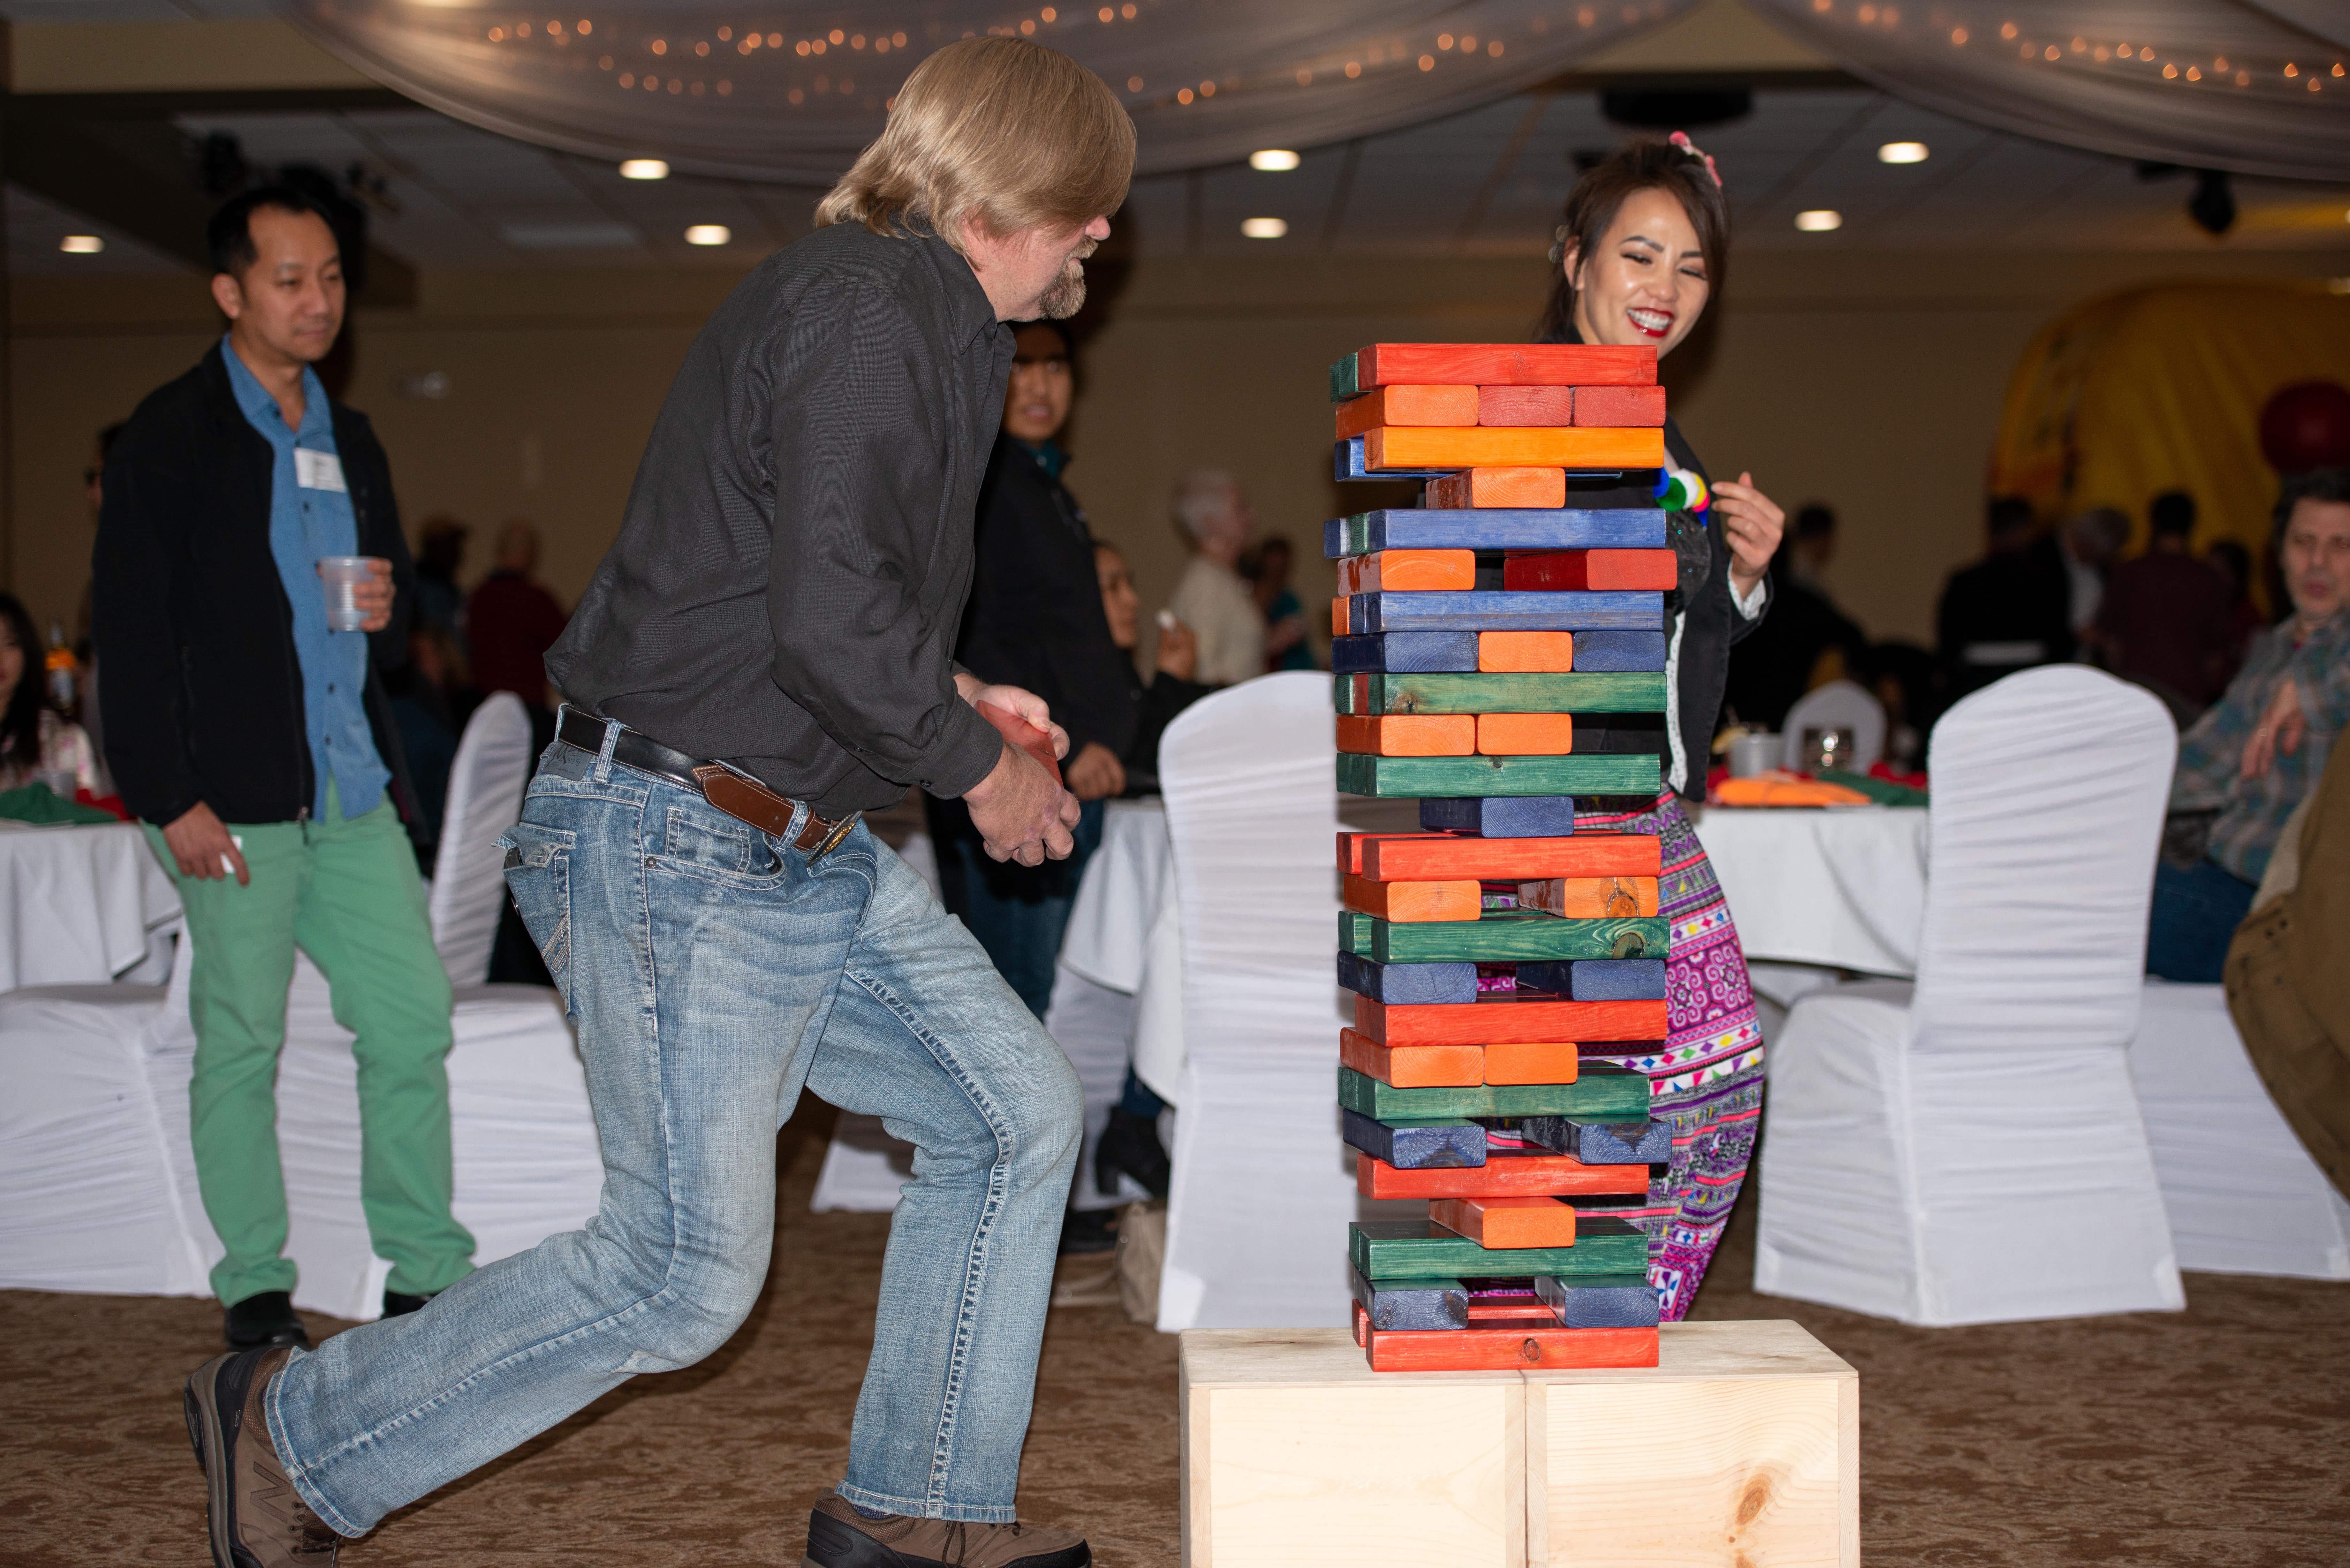 2019-12-December/EventPhotos/7th-Annual-Toys-for-Tots-Holiday-Party/-8 (Image - 8)